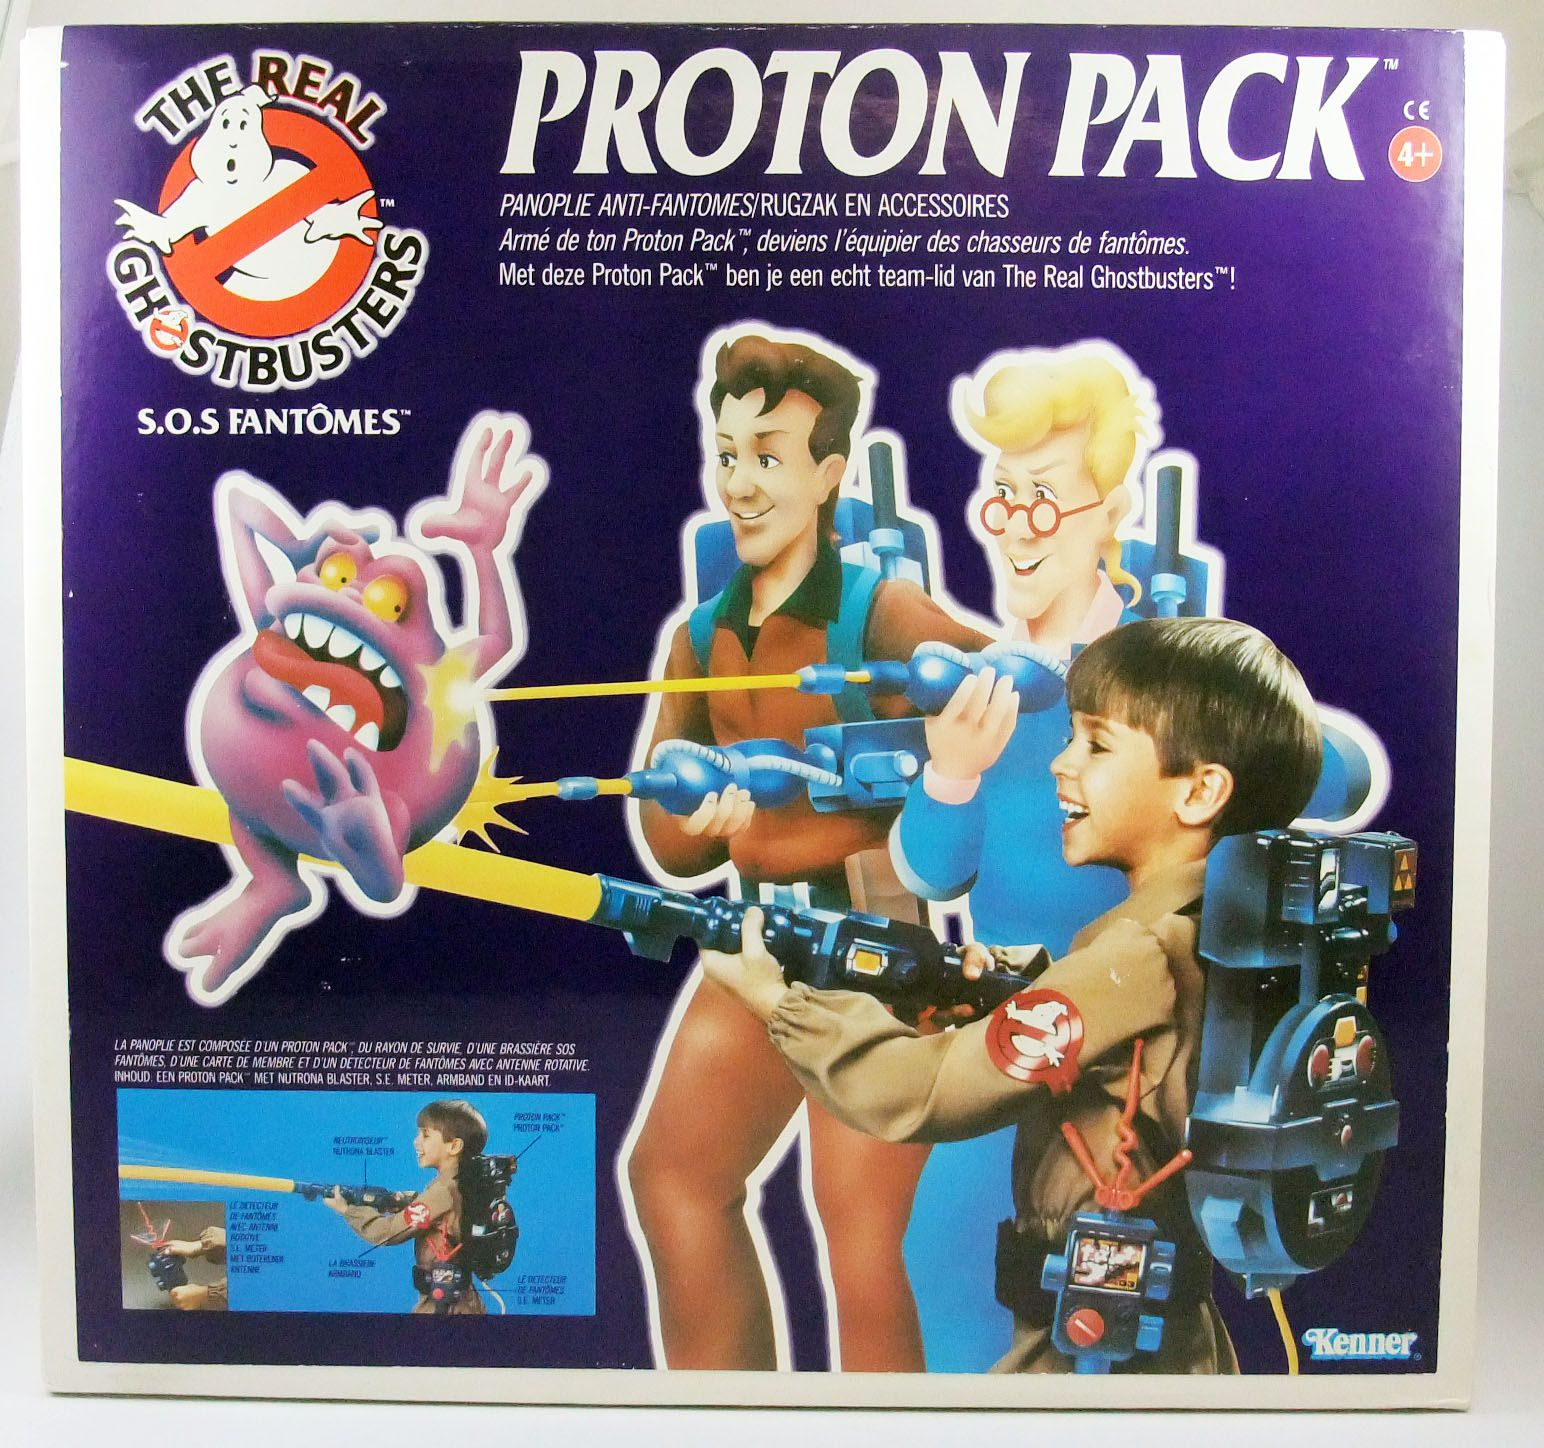 The Real Ghostbusters S.O.S. Fantômes - Proton Pack - Kenner